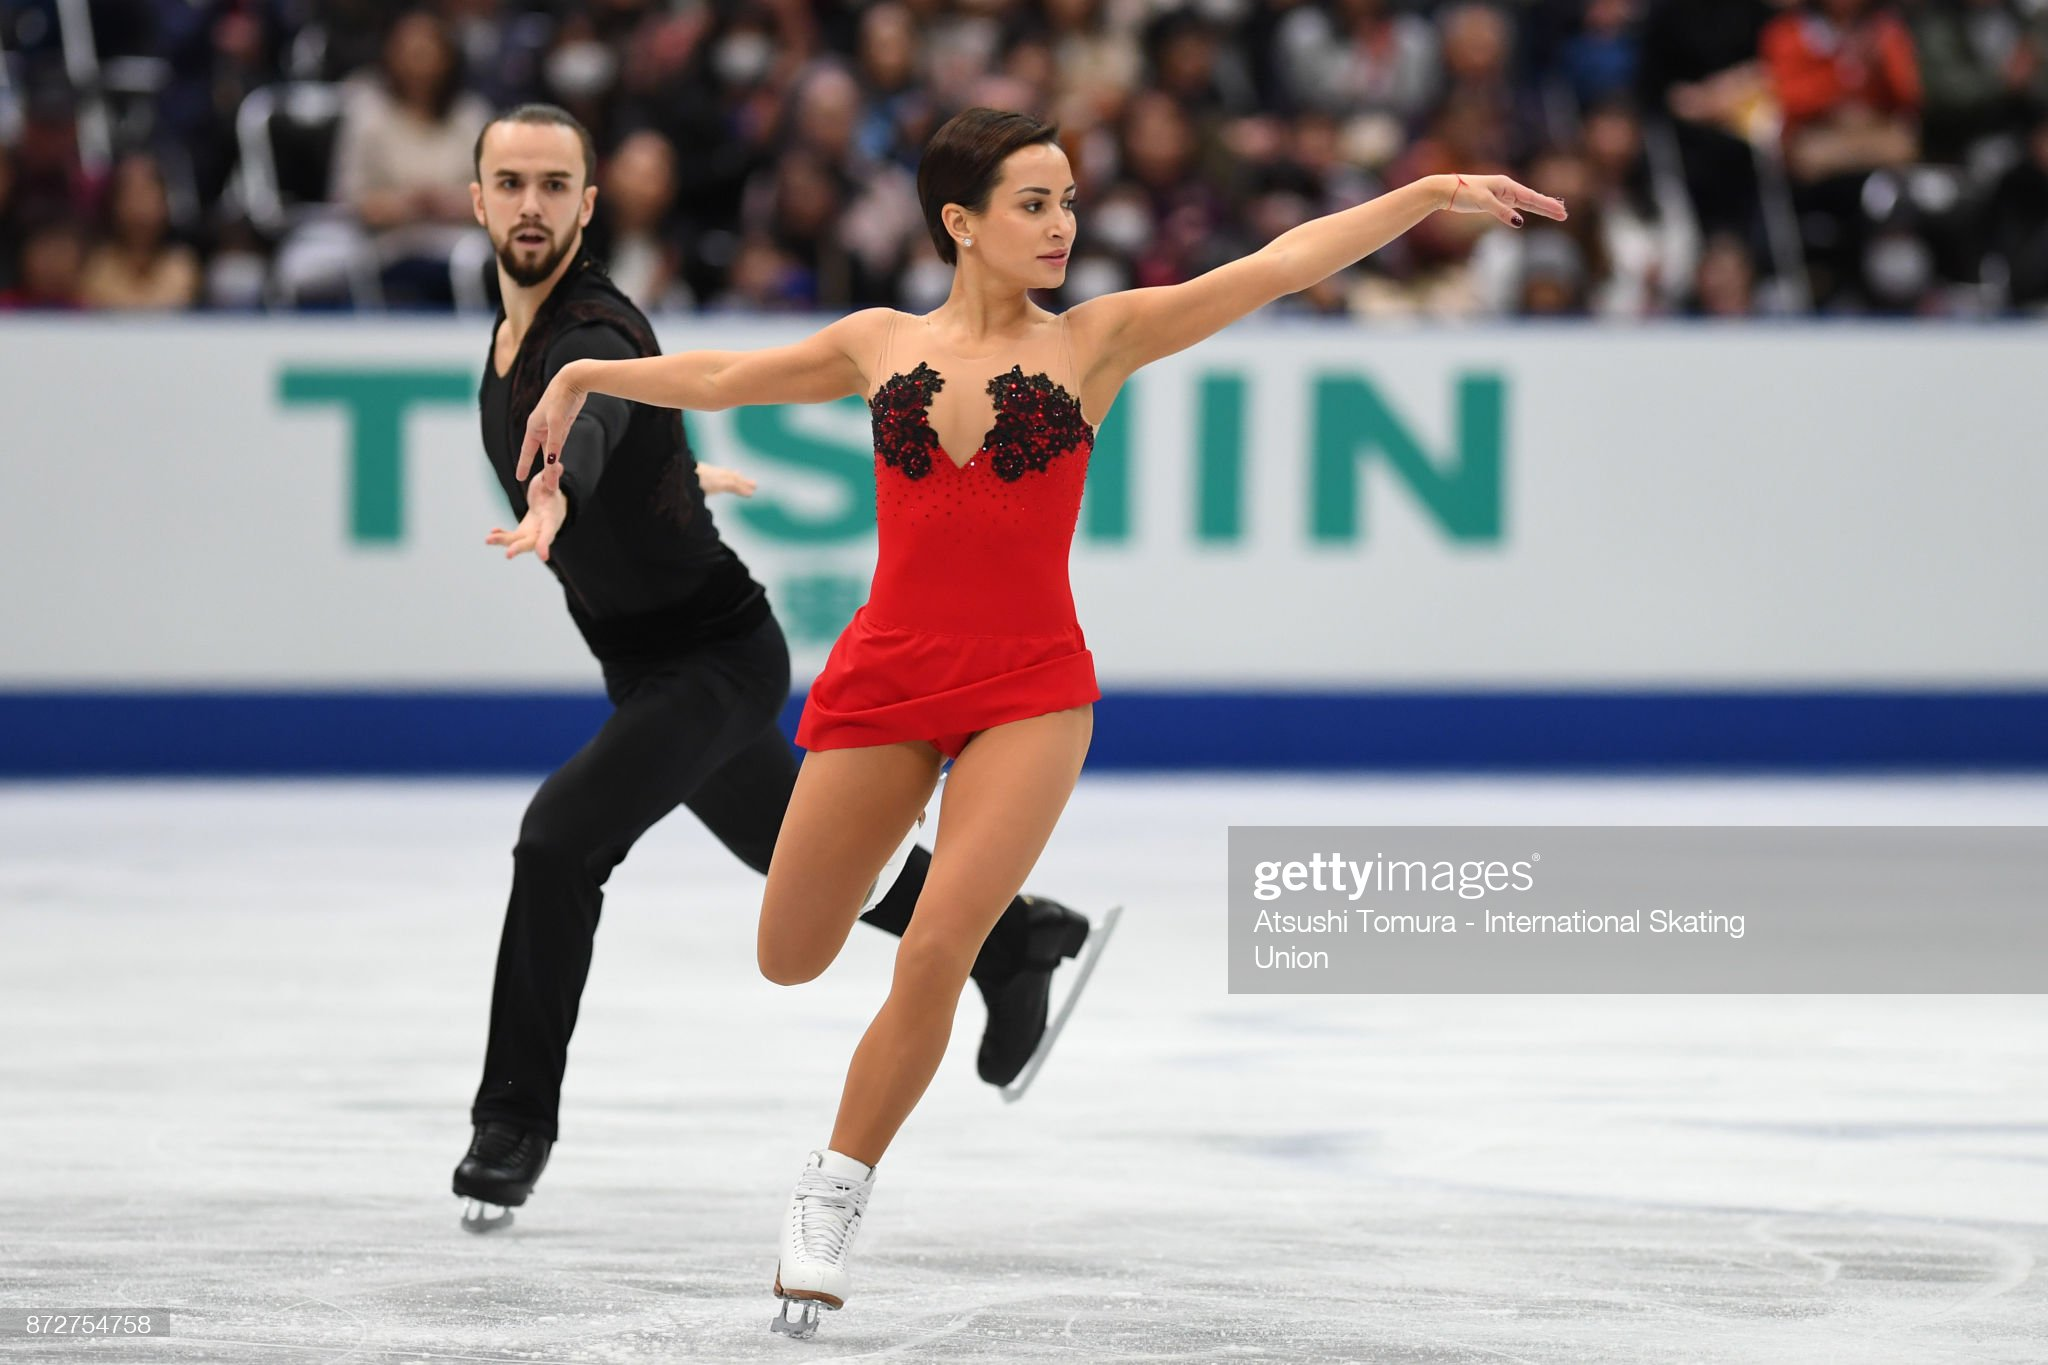 https://media.gettyimages.com/photos/ksenia-stolbova-and-fedor-klimov-of-russia-compete-in-the-pairs-free-picture-id872754758?s=2048x2048